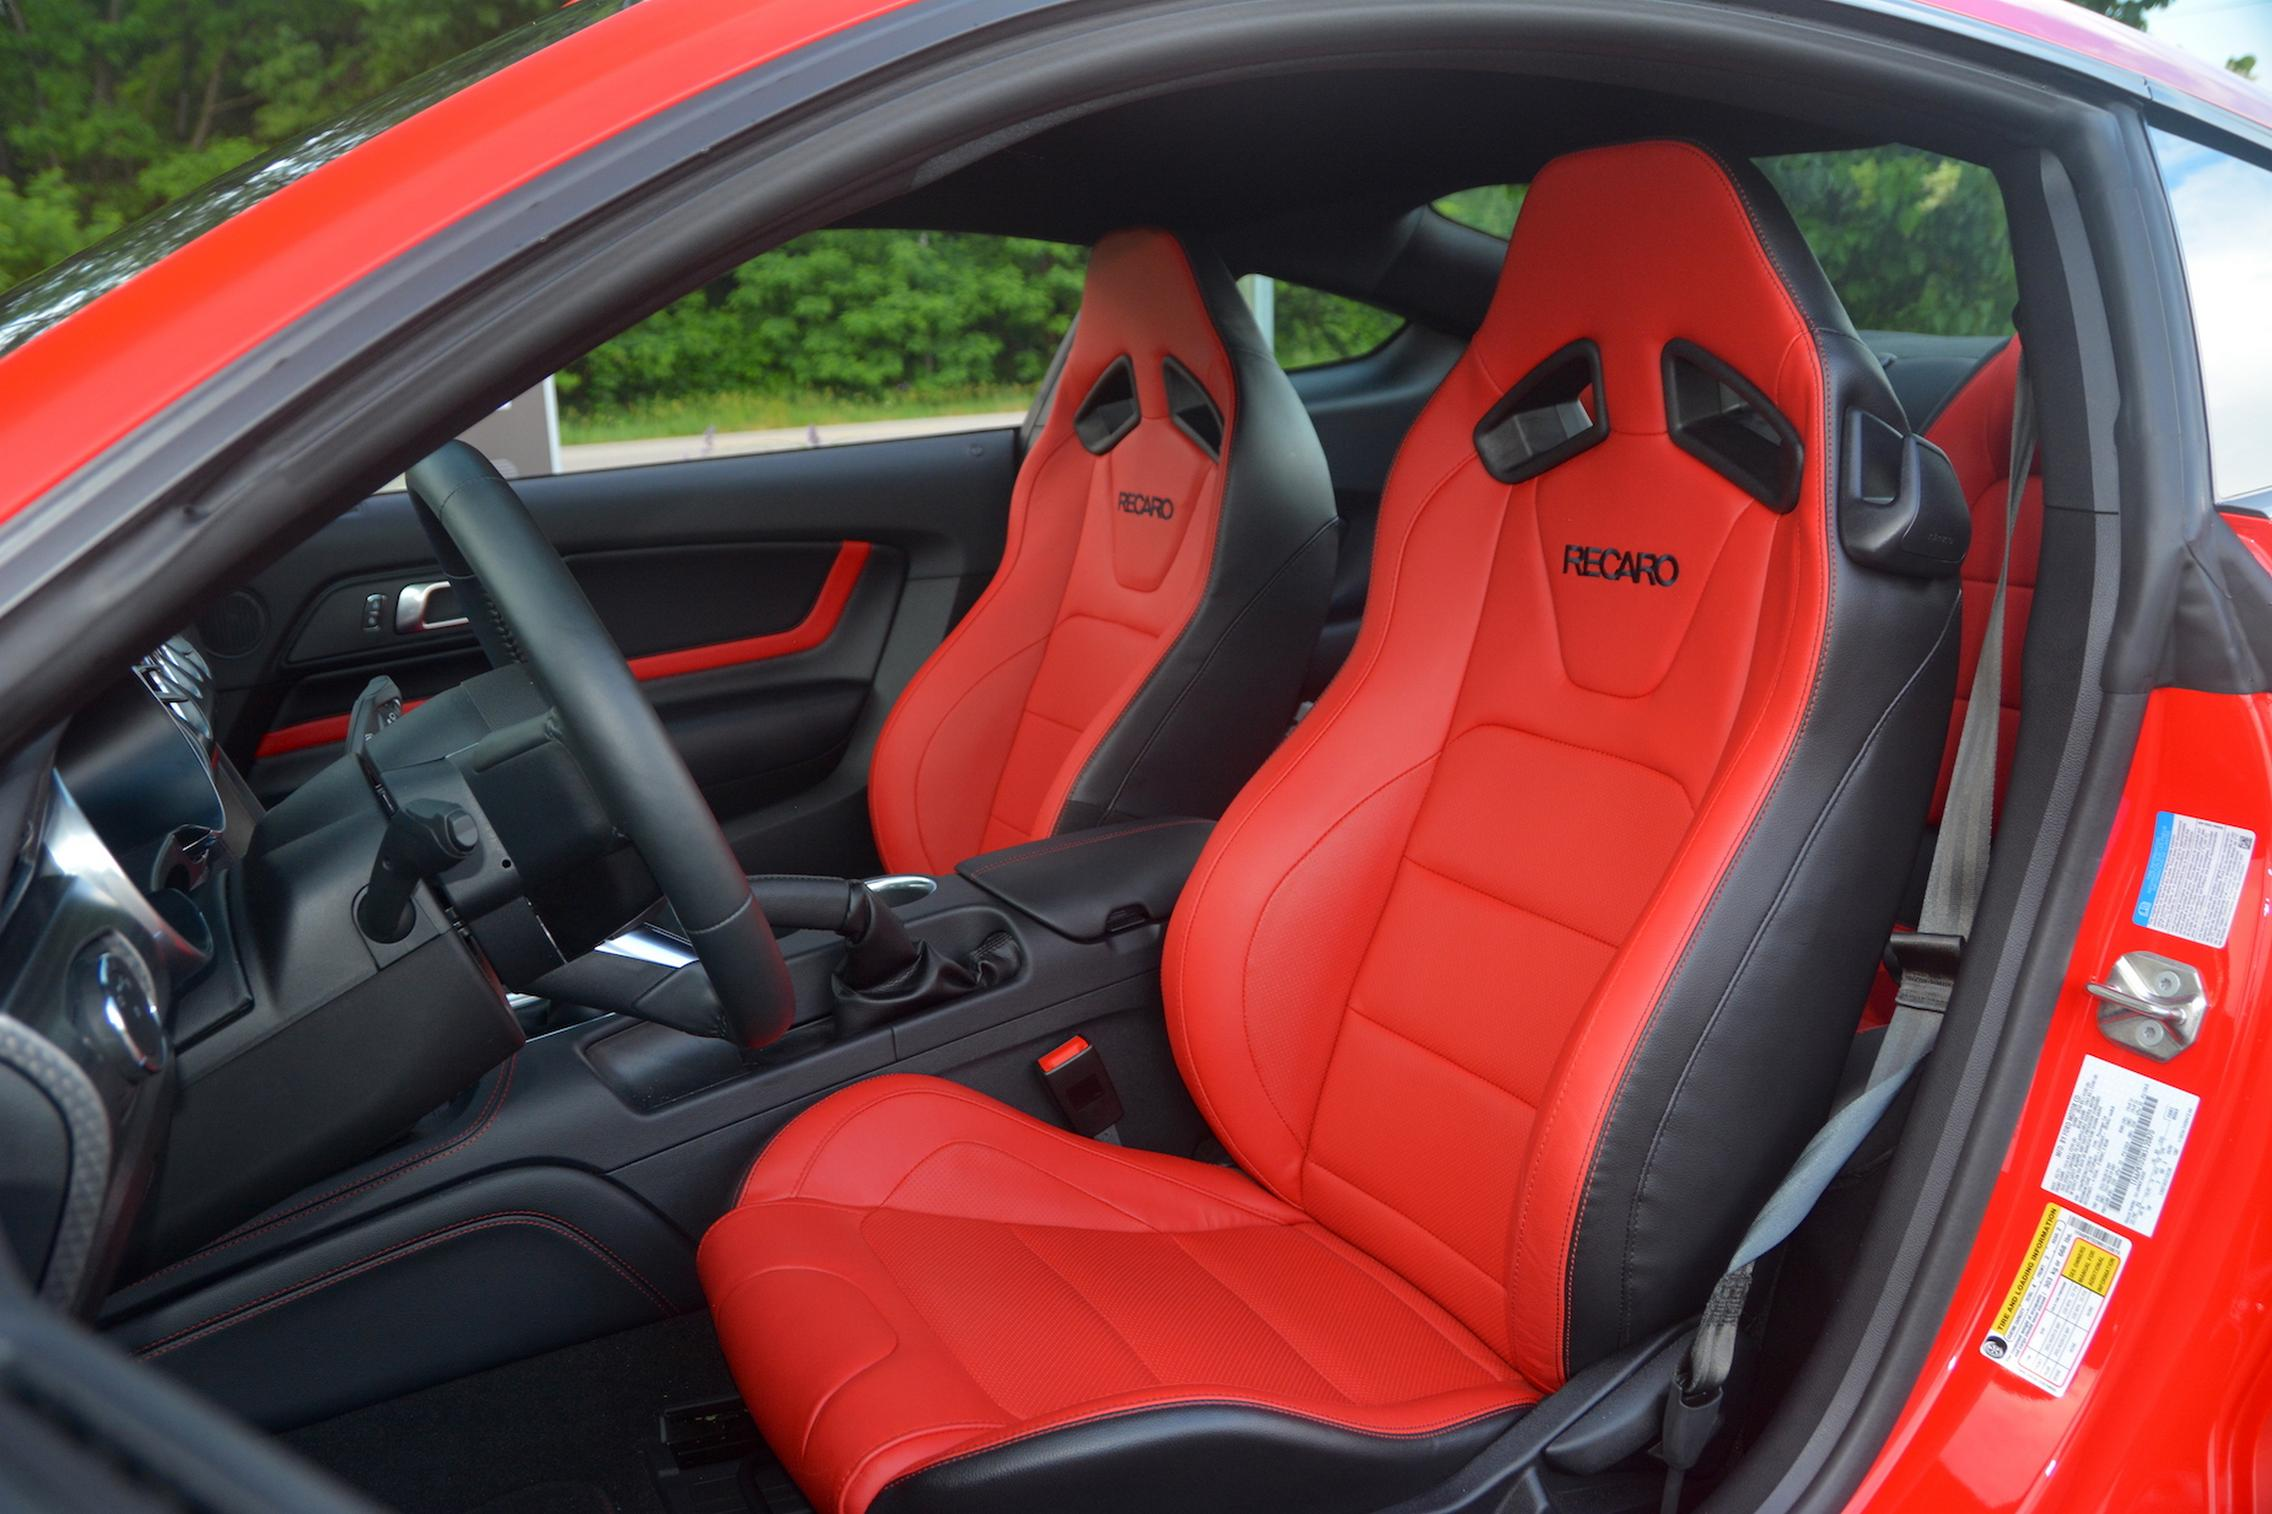 2021 Ford Mustang EcoBoost seats